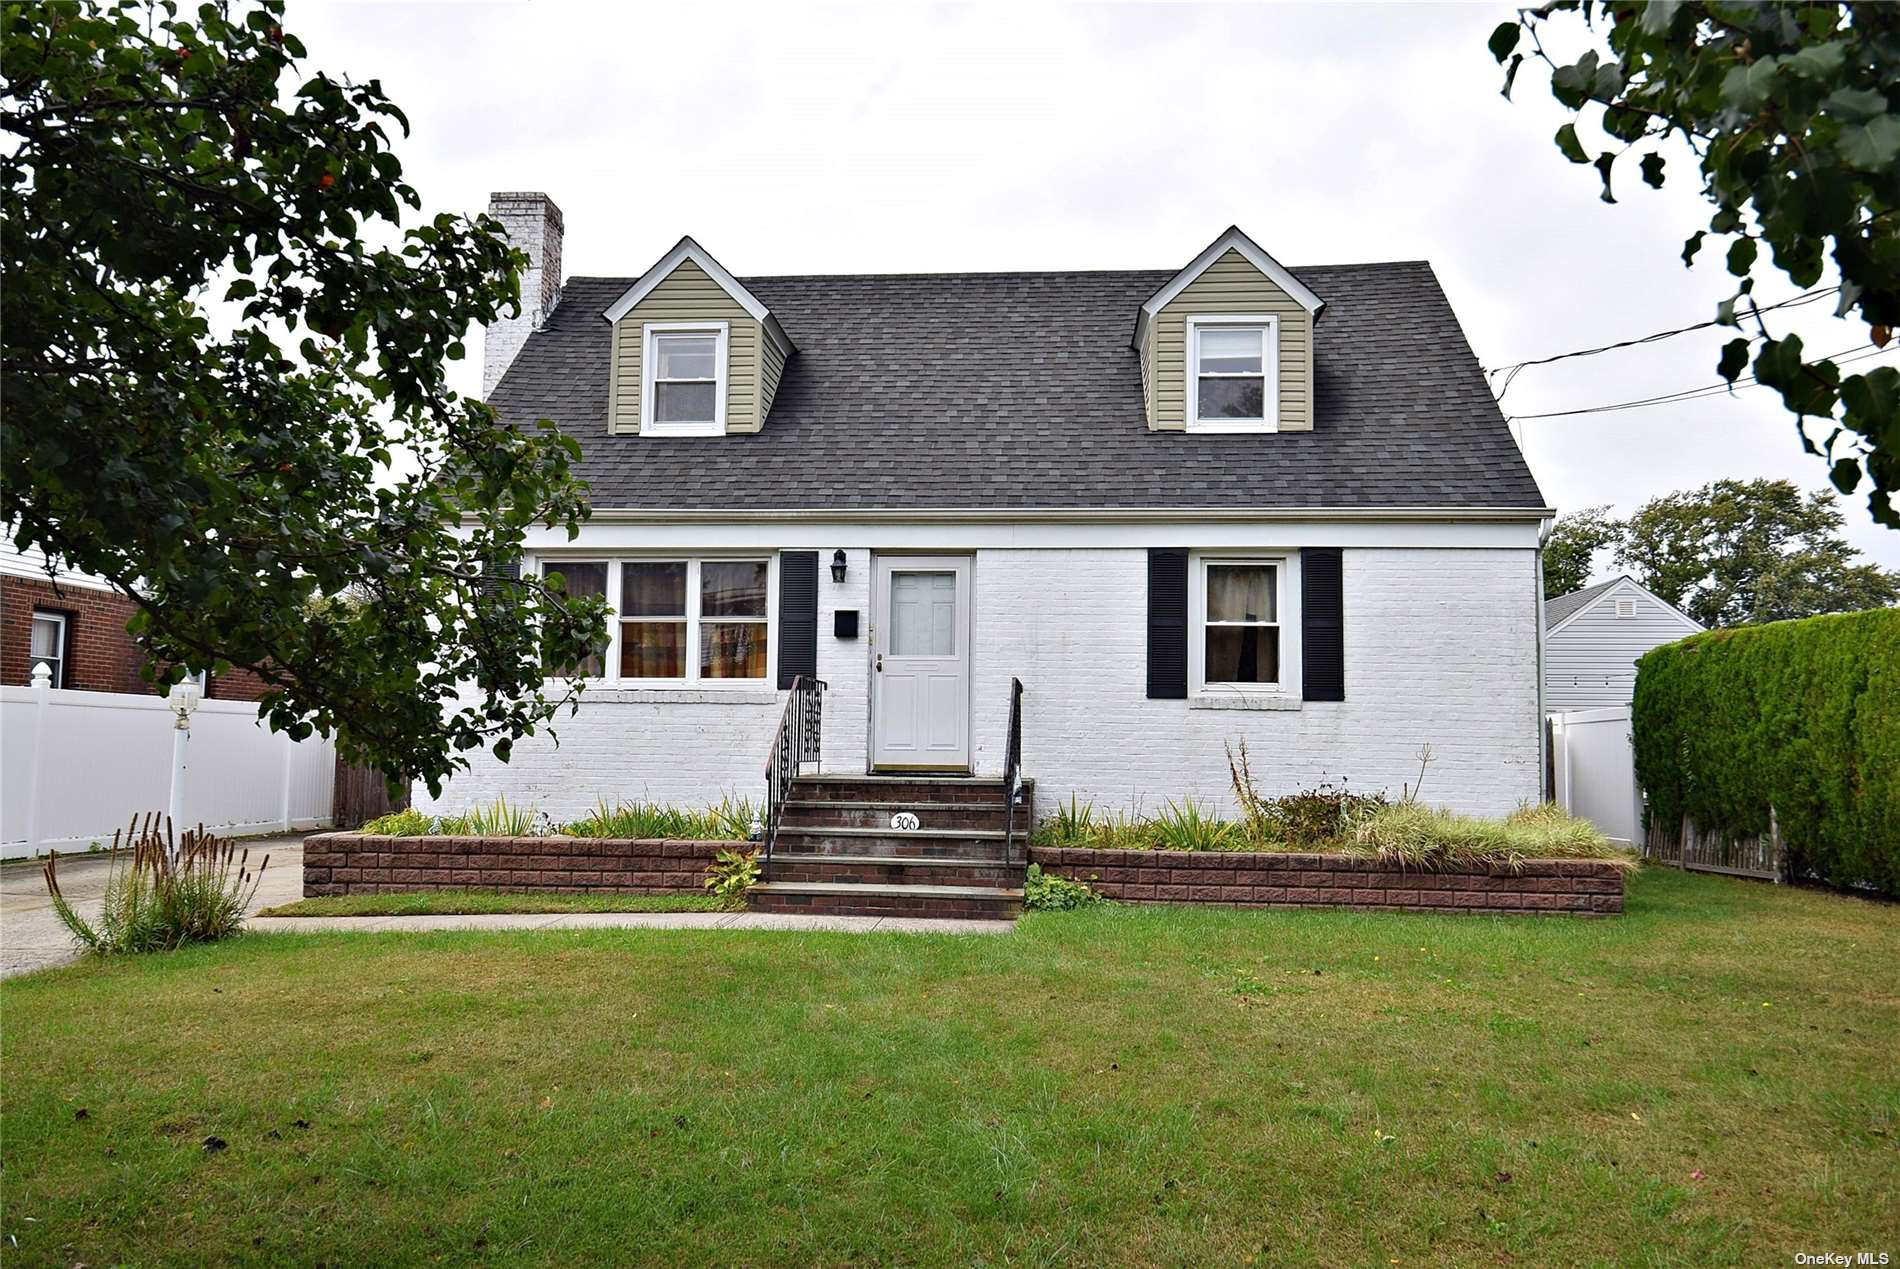 Sun Filled Half Dormered Cape In Massapequa School District. 4 Bedrooms,2 Full Baths, Hardwood Floors Throughout, Western Exposure Backyard, Over Sized Garage, Unfinished Basement, Great Location